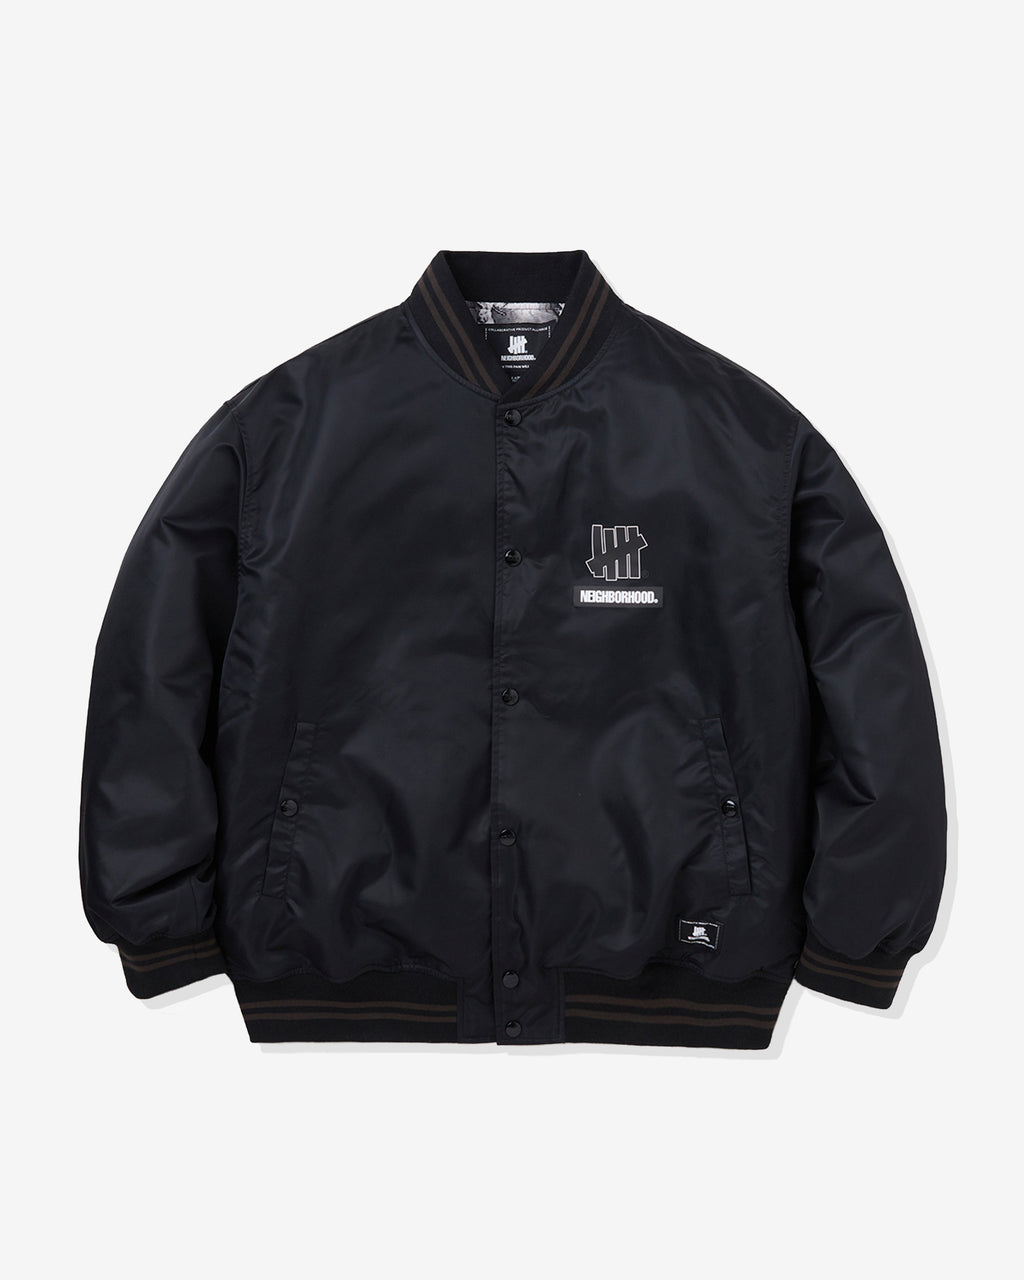 NBHD X UNDFTD JACKET - BLACK